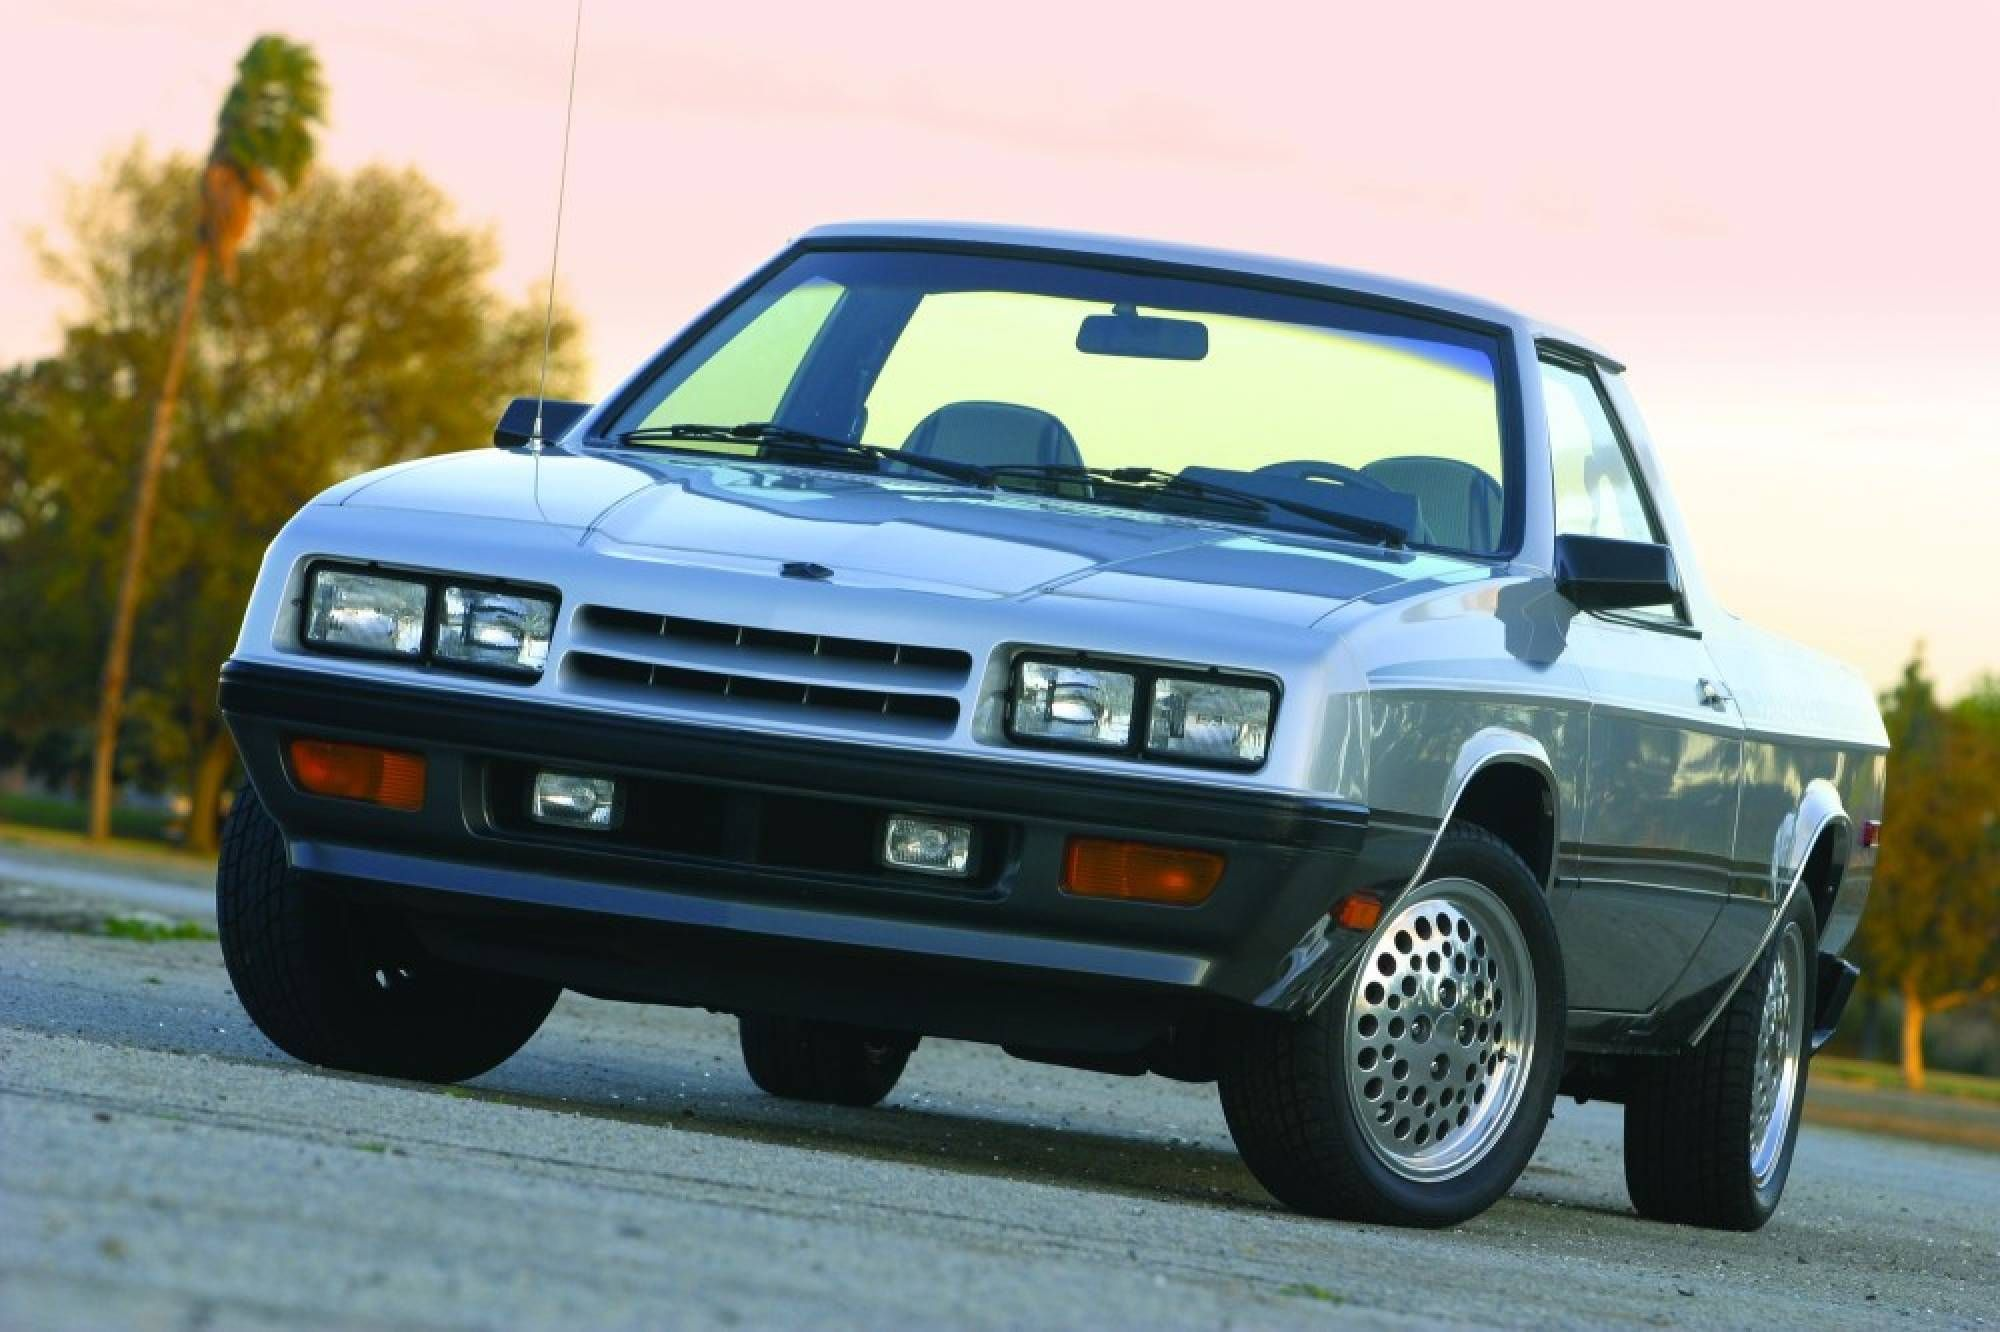 86 shelby dodge rampage blue w slvr mini truck got blues pinterest dodge mopar and cars